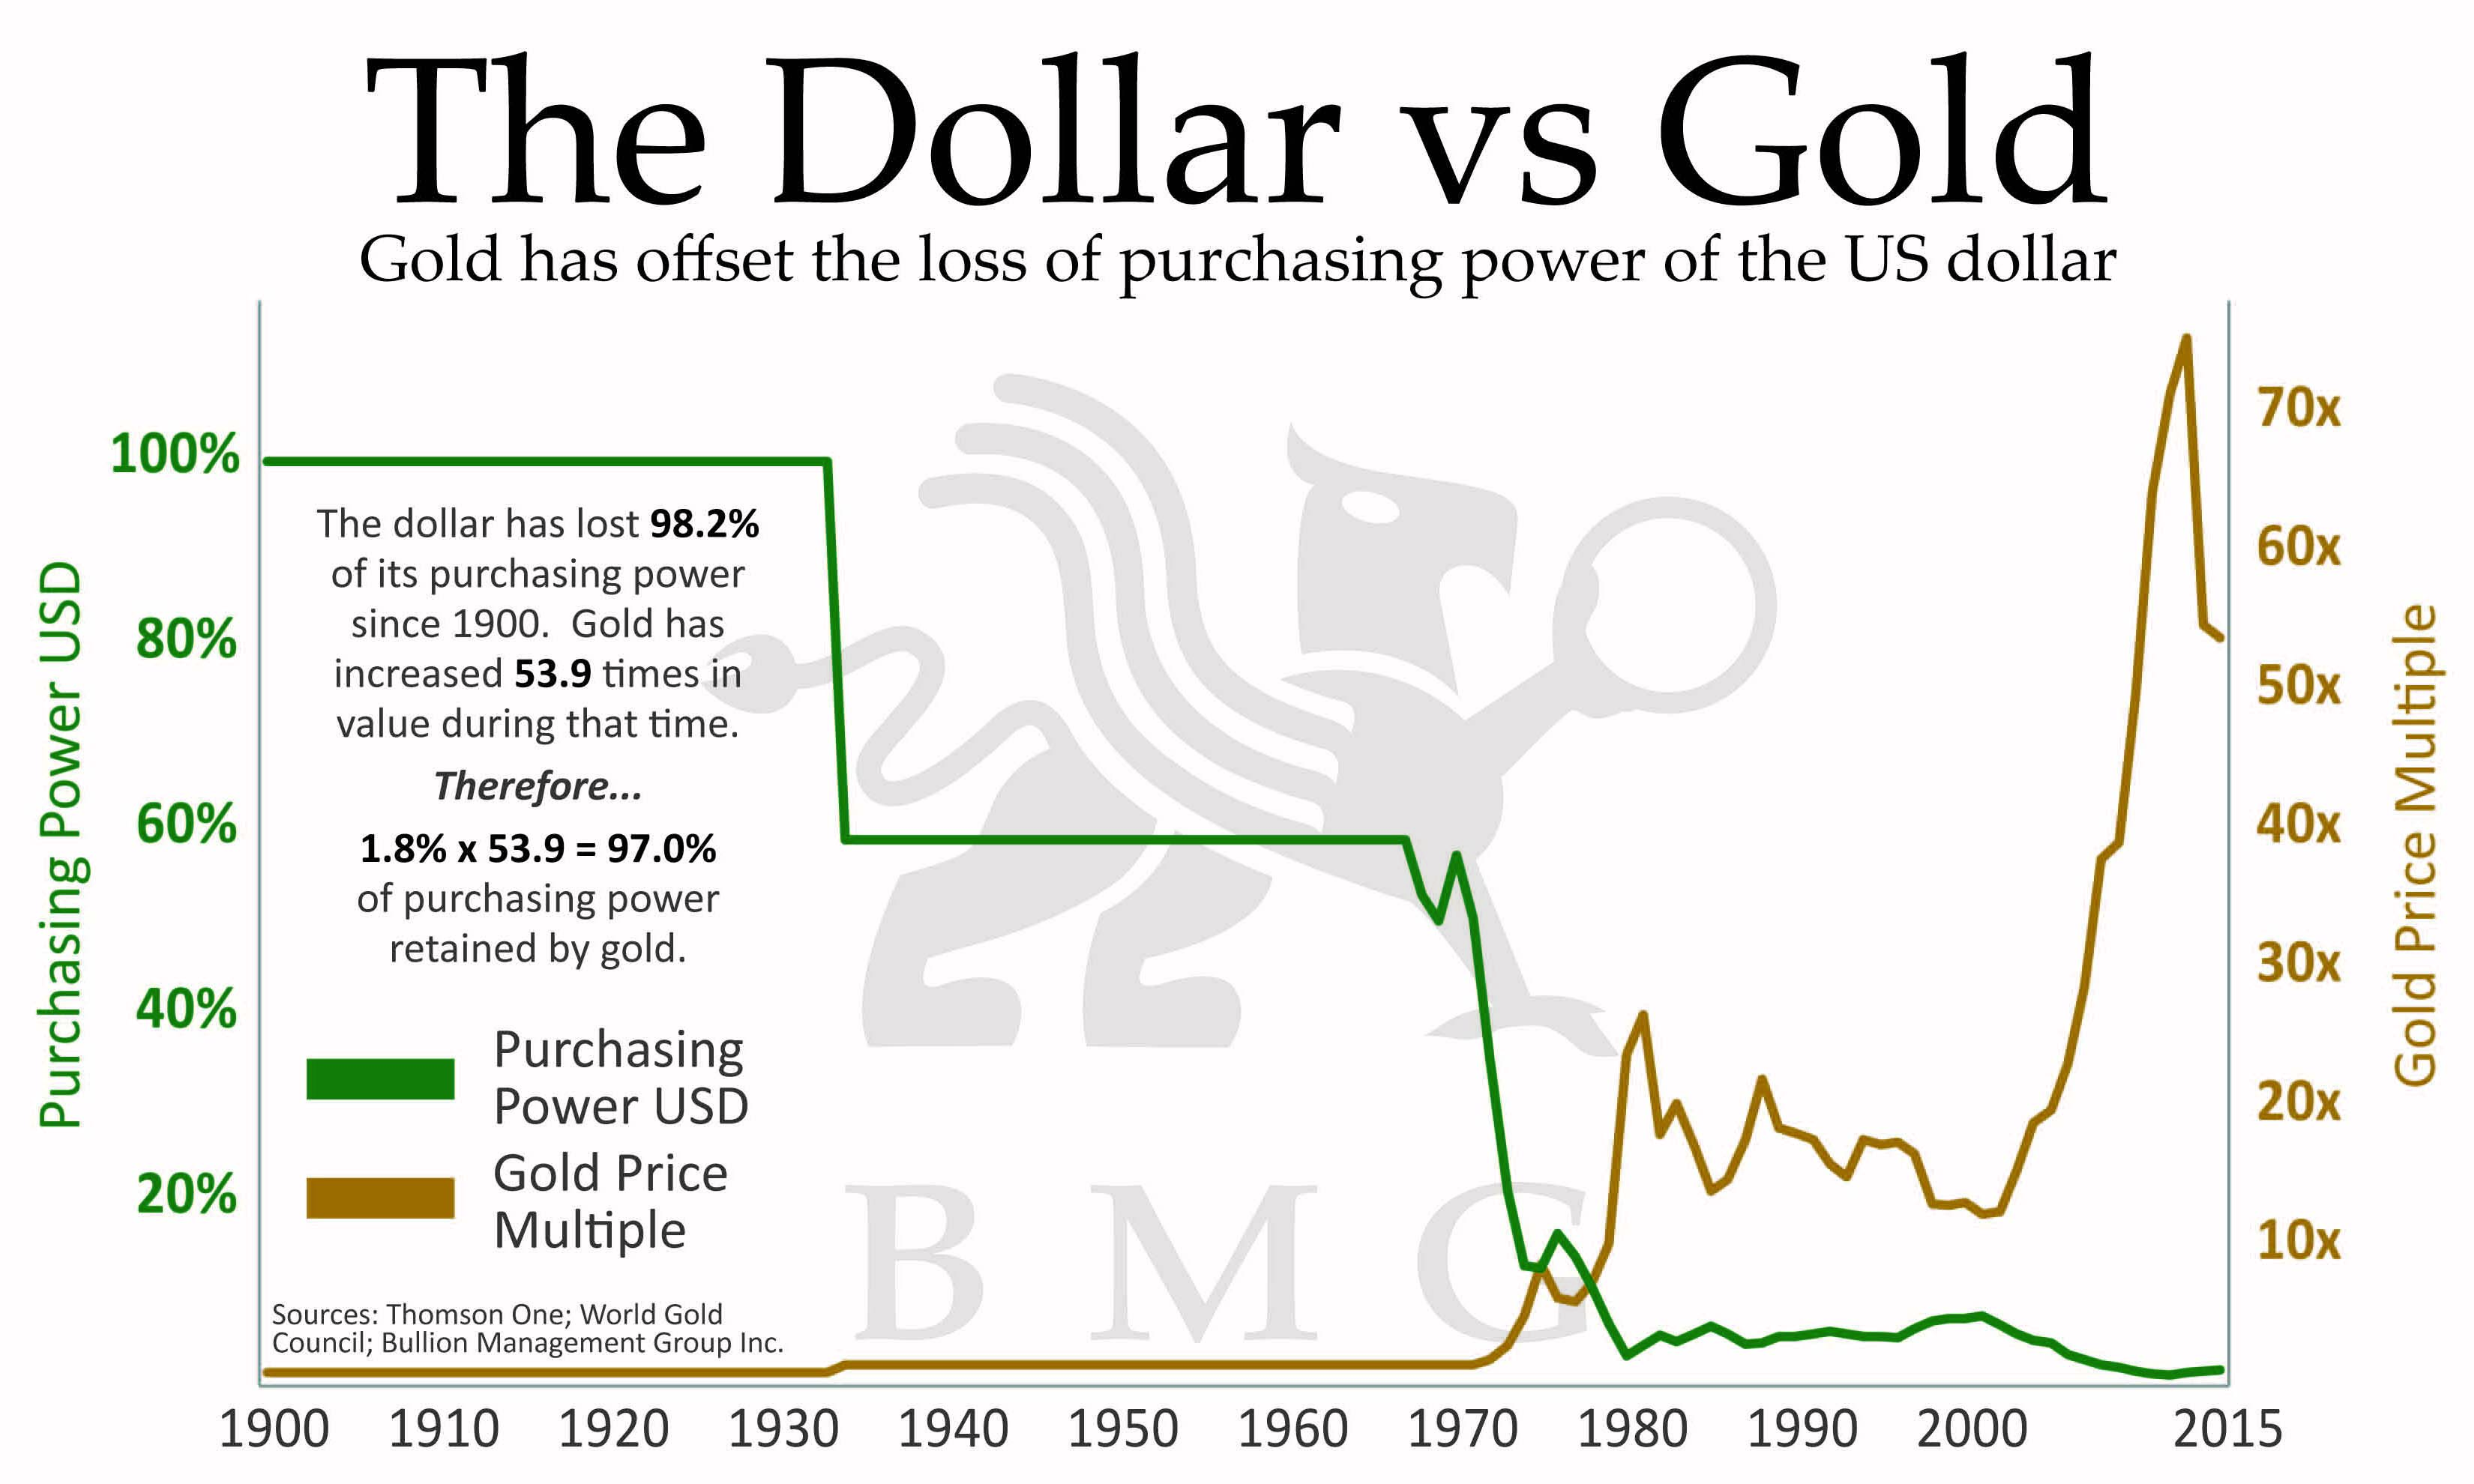 Dollar Vs Gold Has Offset The Loss Of Purchasing Us